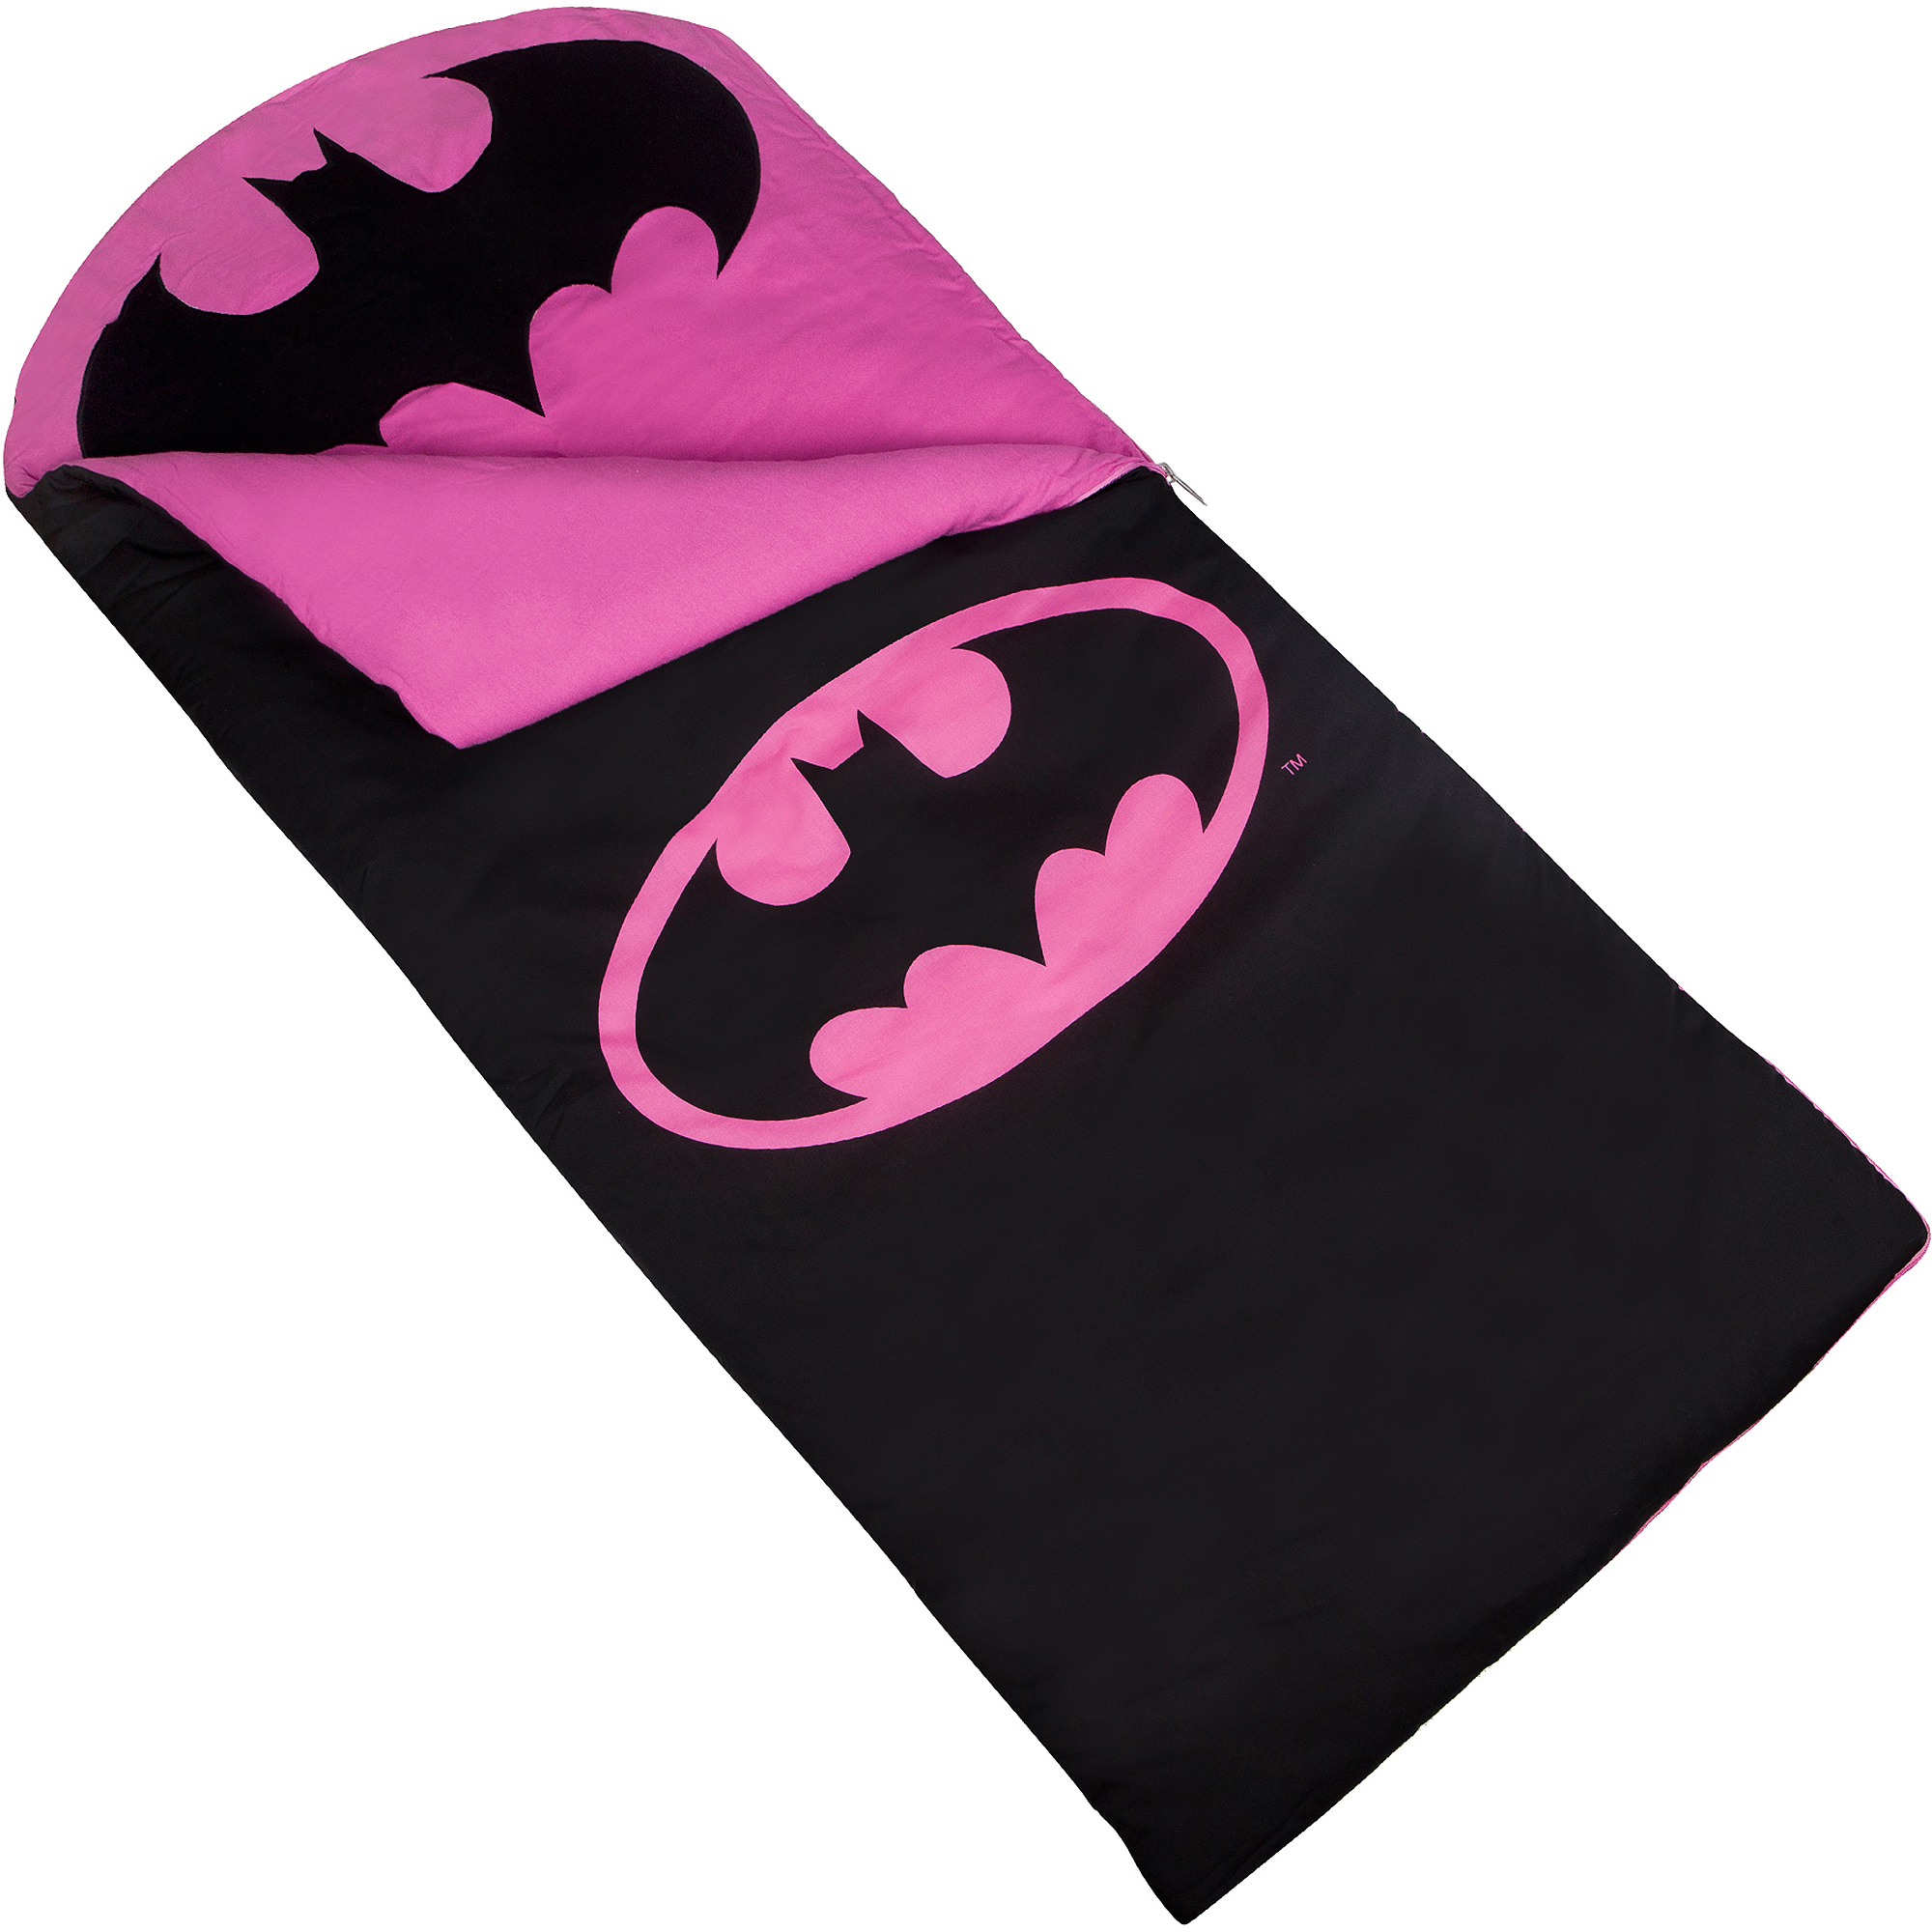 Wildkin Kids' Batman Emblem Sleeping Bag, Pink by Wildkin